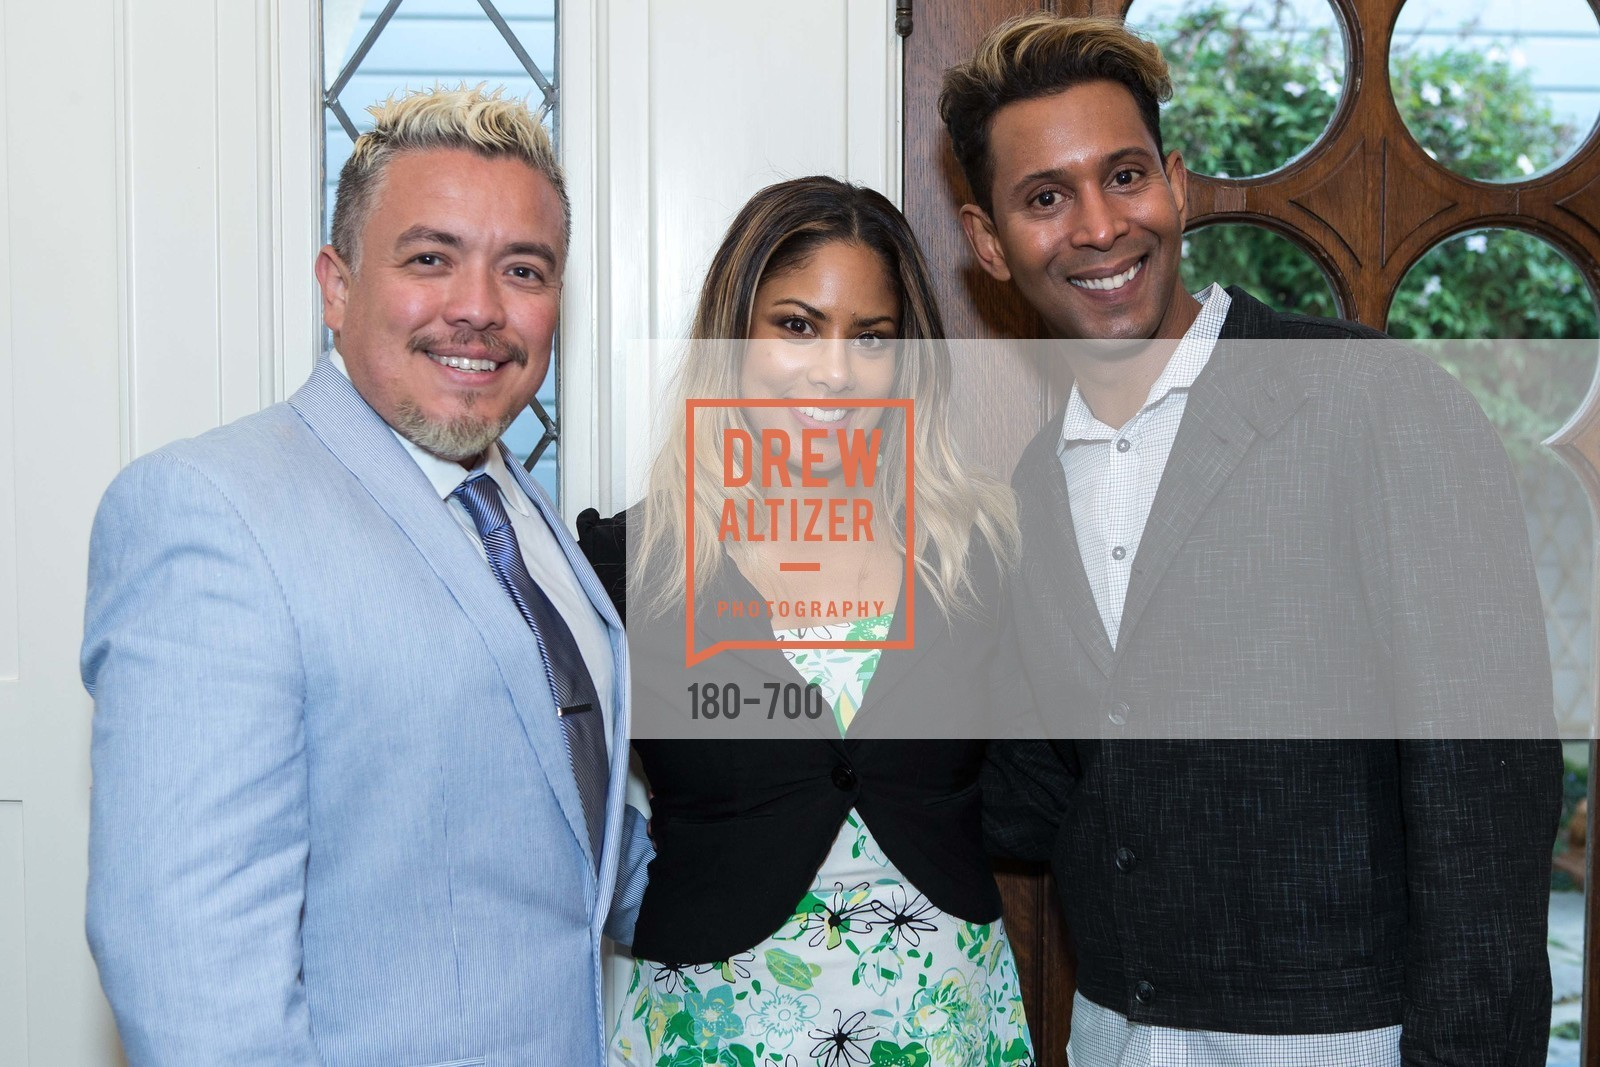 Victor Vargas, Emillio Mesa, SUKEY FORBES' Book Signing, US, May 6th, 2015,Drew Altizer, Drew Altizer Photography, full-service agency, private events, San Francisco photographer, photographer california